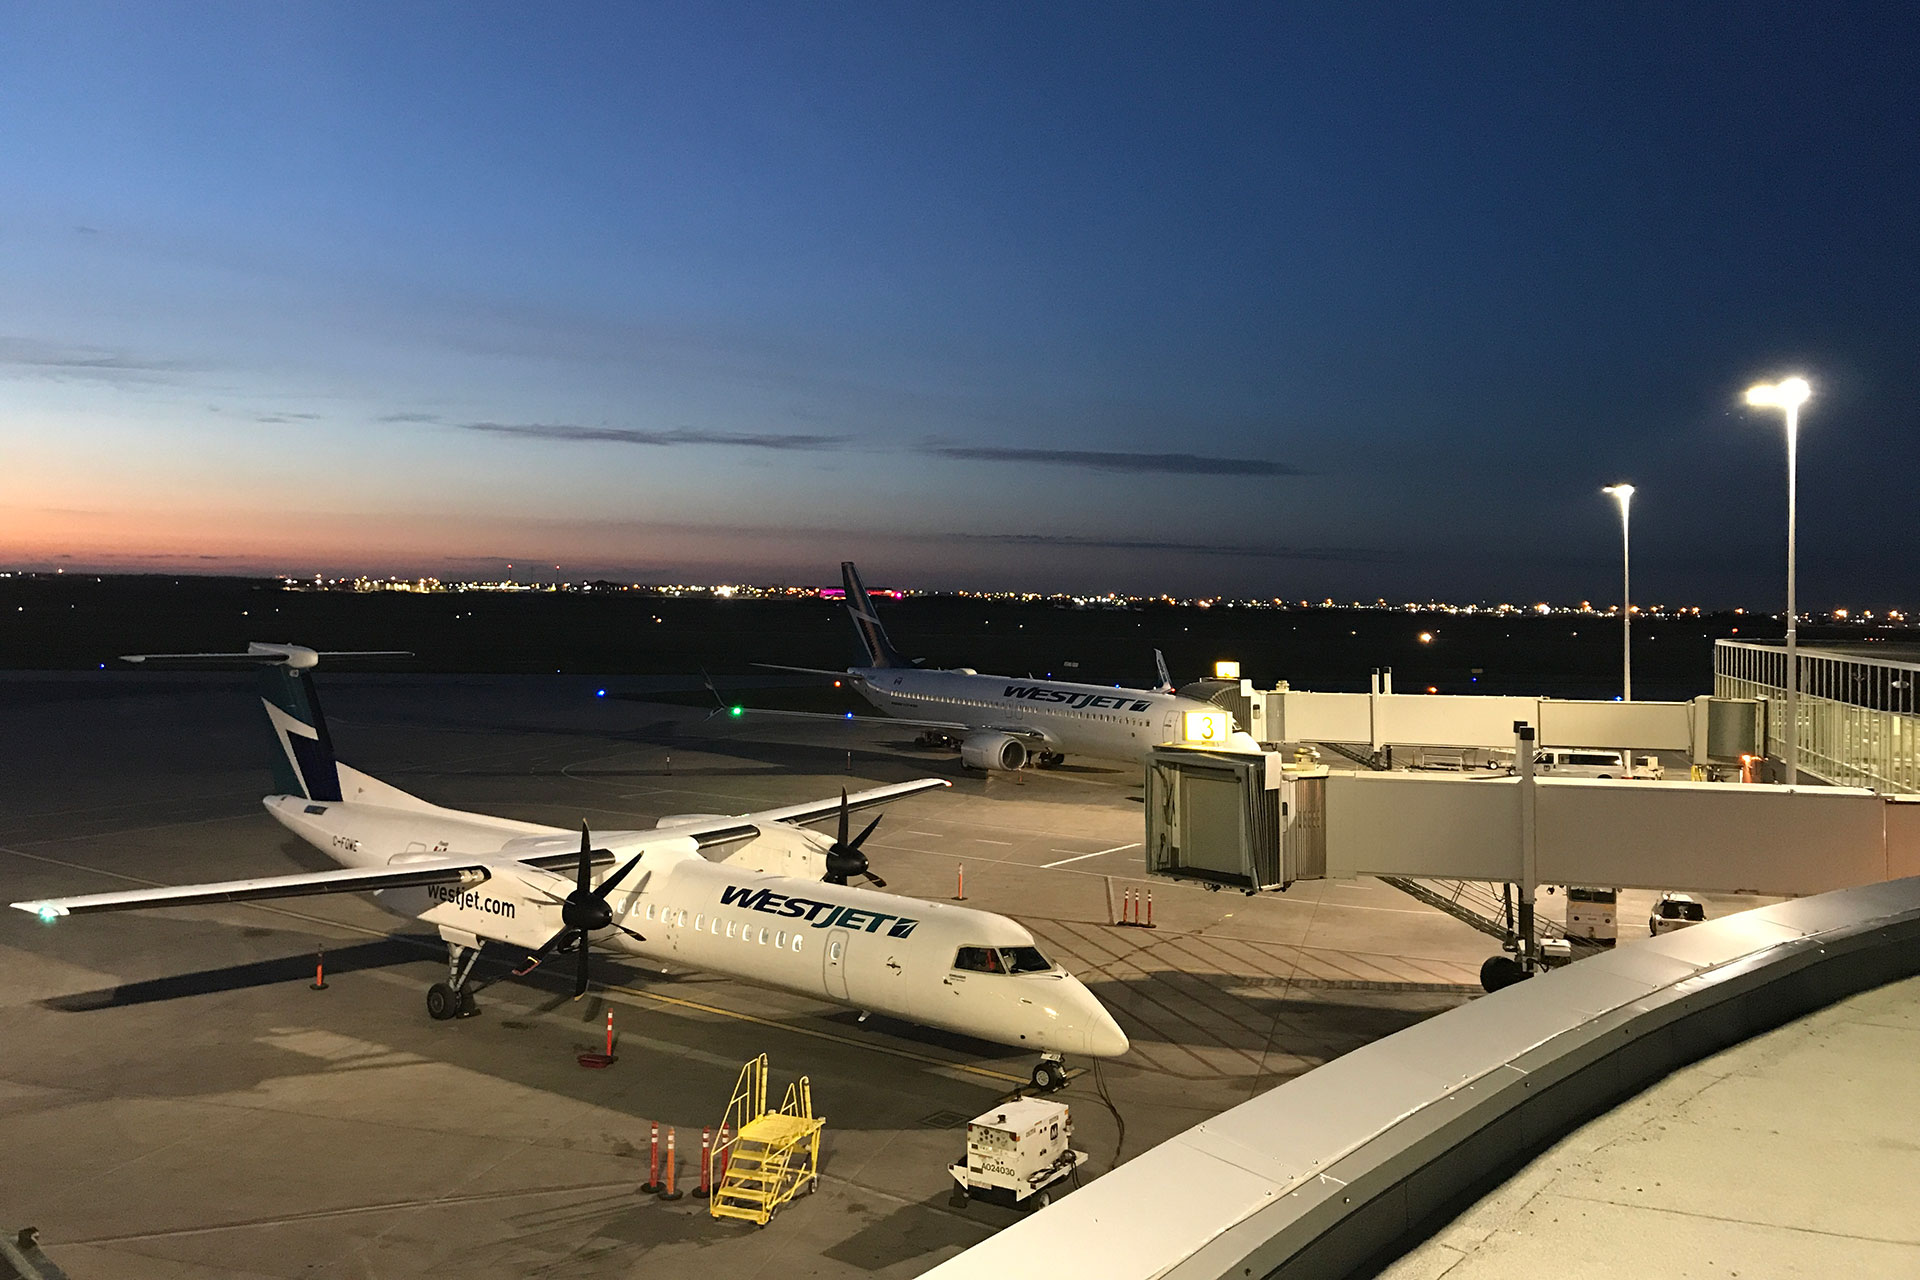 OMNIstar provides perfect uniformity for the apron lighting at Saskatoon airport in Canada